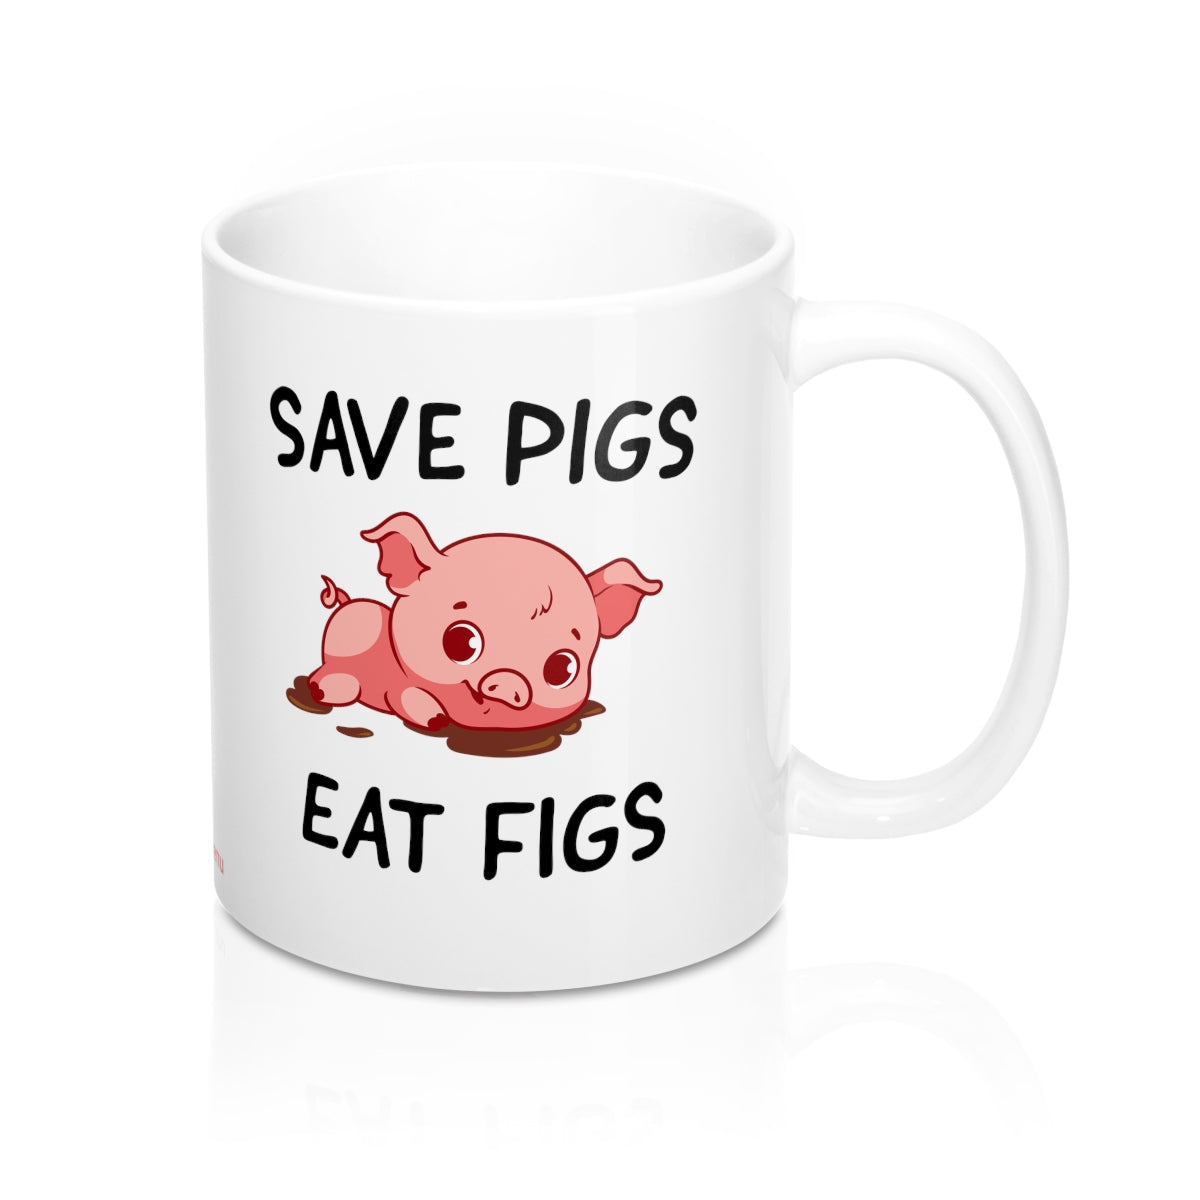 Save Pigs, Eat Figs - Mug - My Vegan Menu